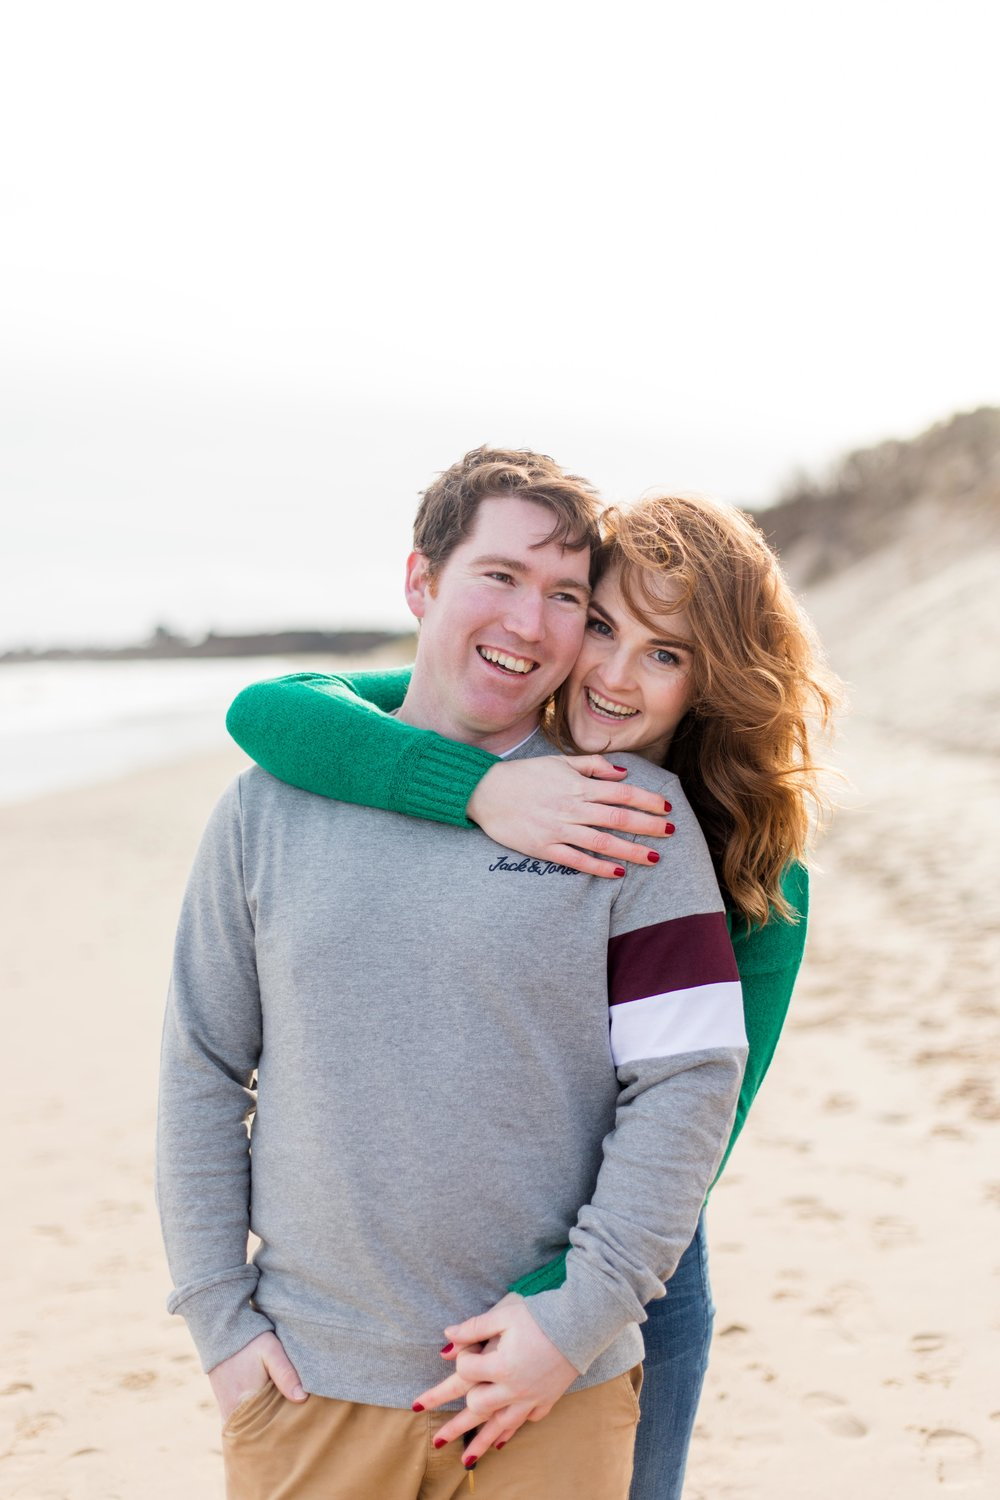 a couple posing for an engagement photoshoot on a sandy beach brittas bay in ireland a woman has red hair and is wearing a green jumper and a man is wearing a grey jumper with khaki chinos